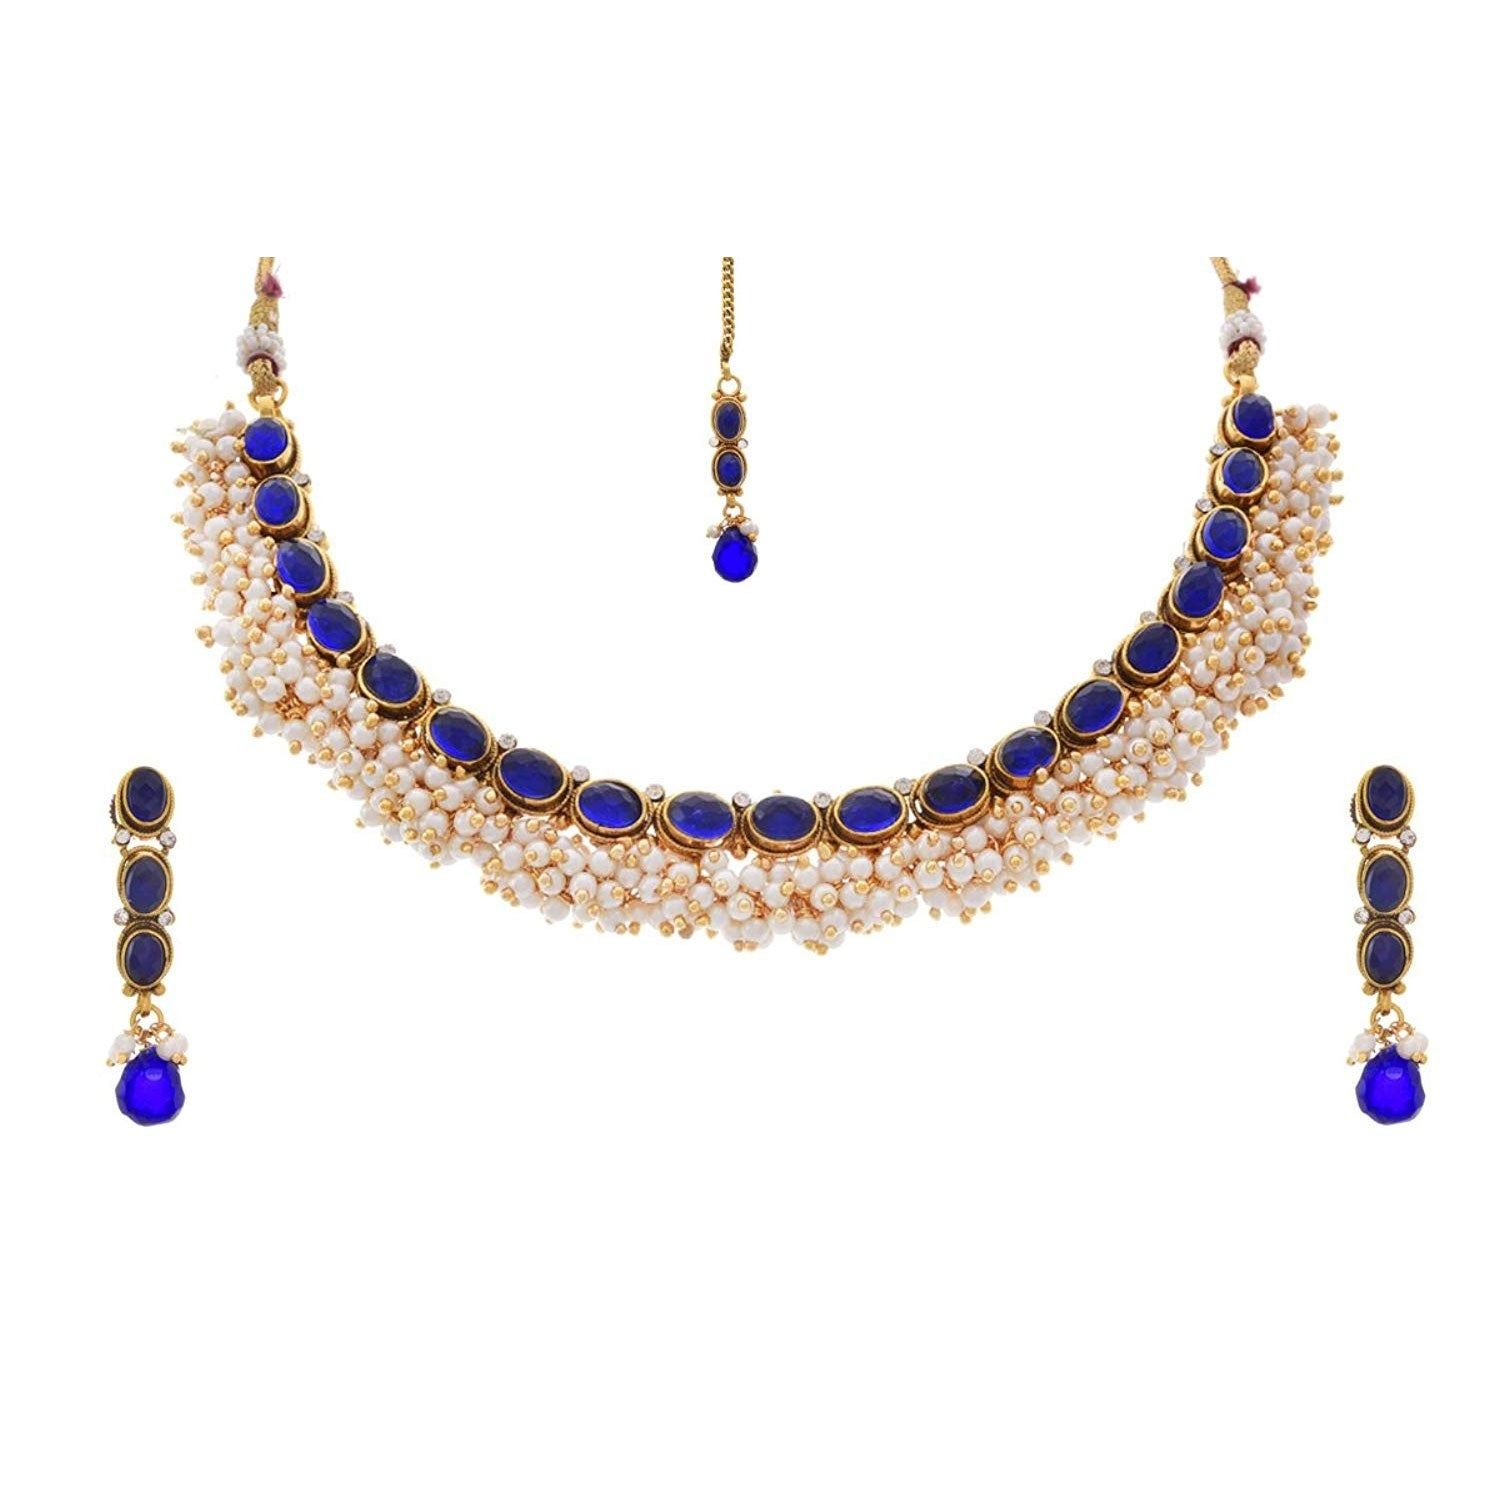 JFL - Traditional & Ethnic One Gram Gold Plated Designer Necklace Set With Earring & Maang Tikka for Women & Girls